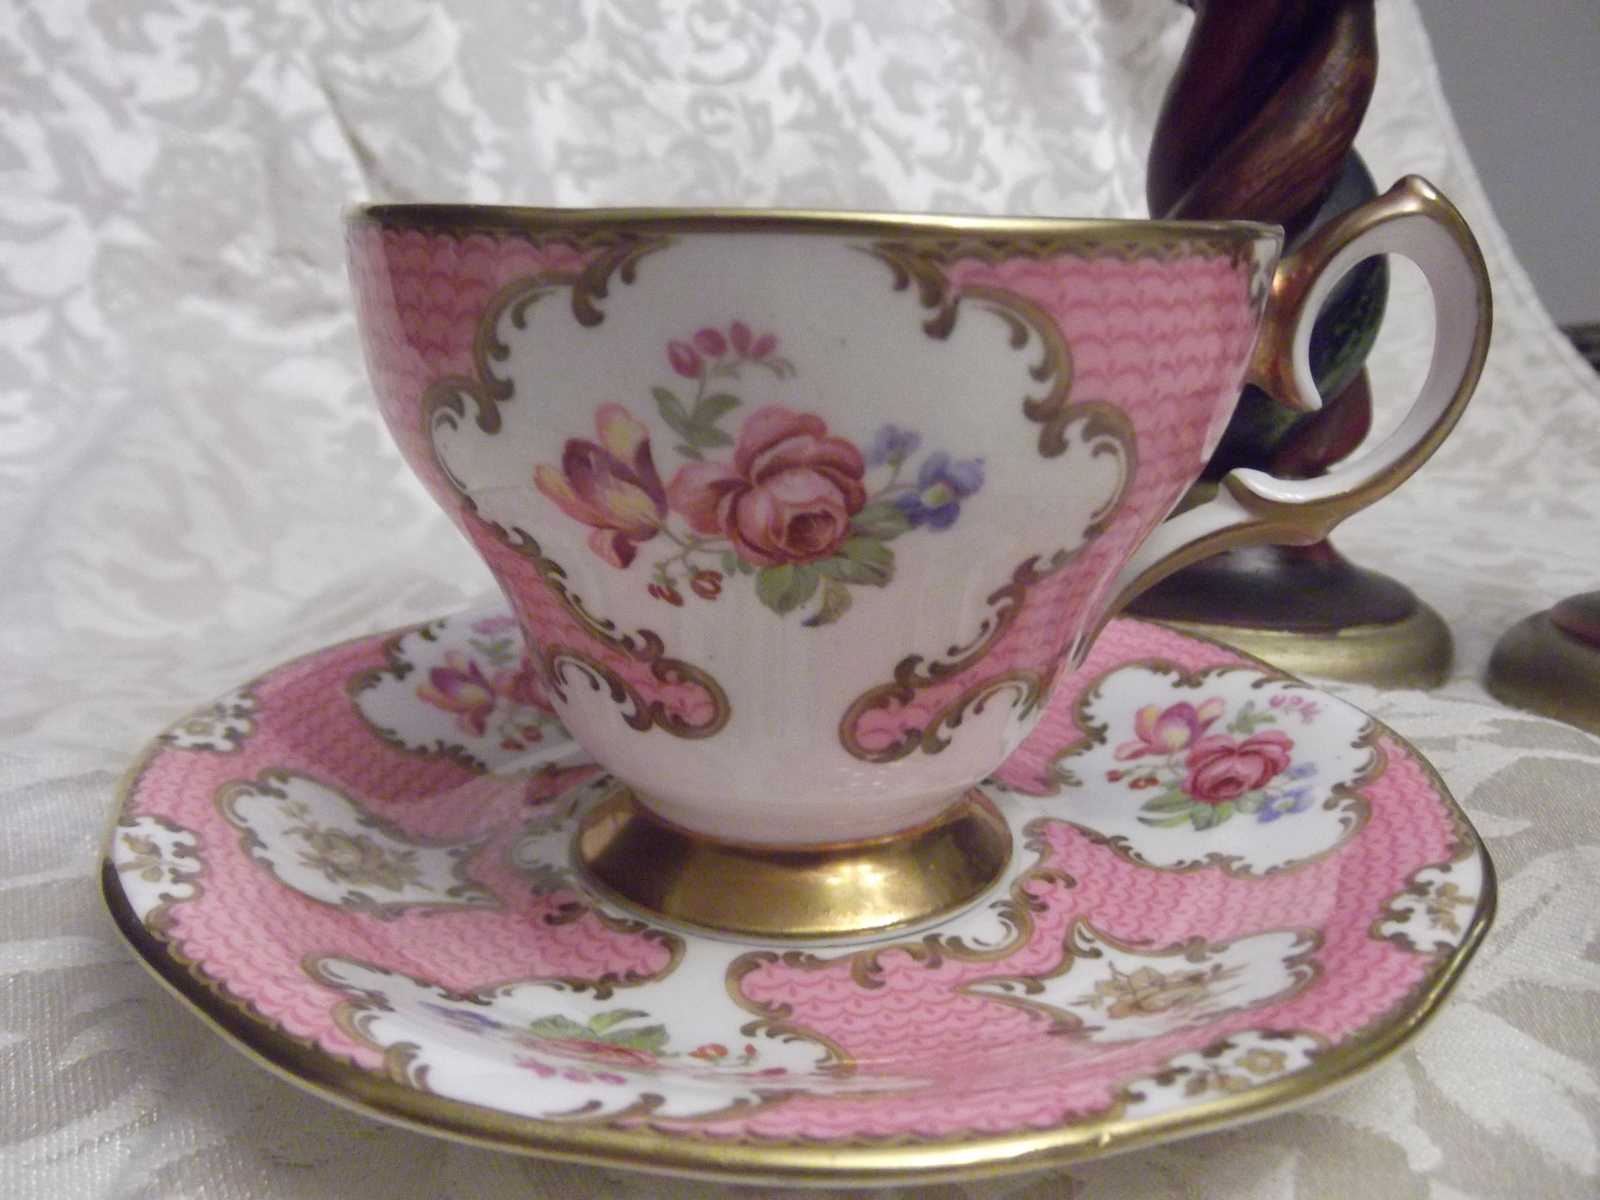 queen anne lady eleanor fine bone china tea cup and saucer decorative collectible brands. Black Bedroom Furniture Sets. Home Design Ideas